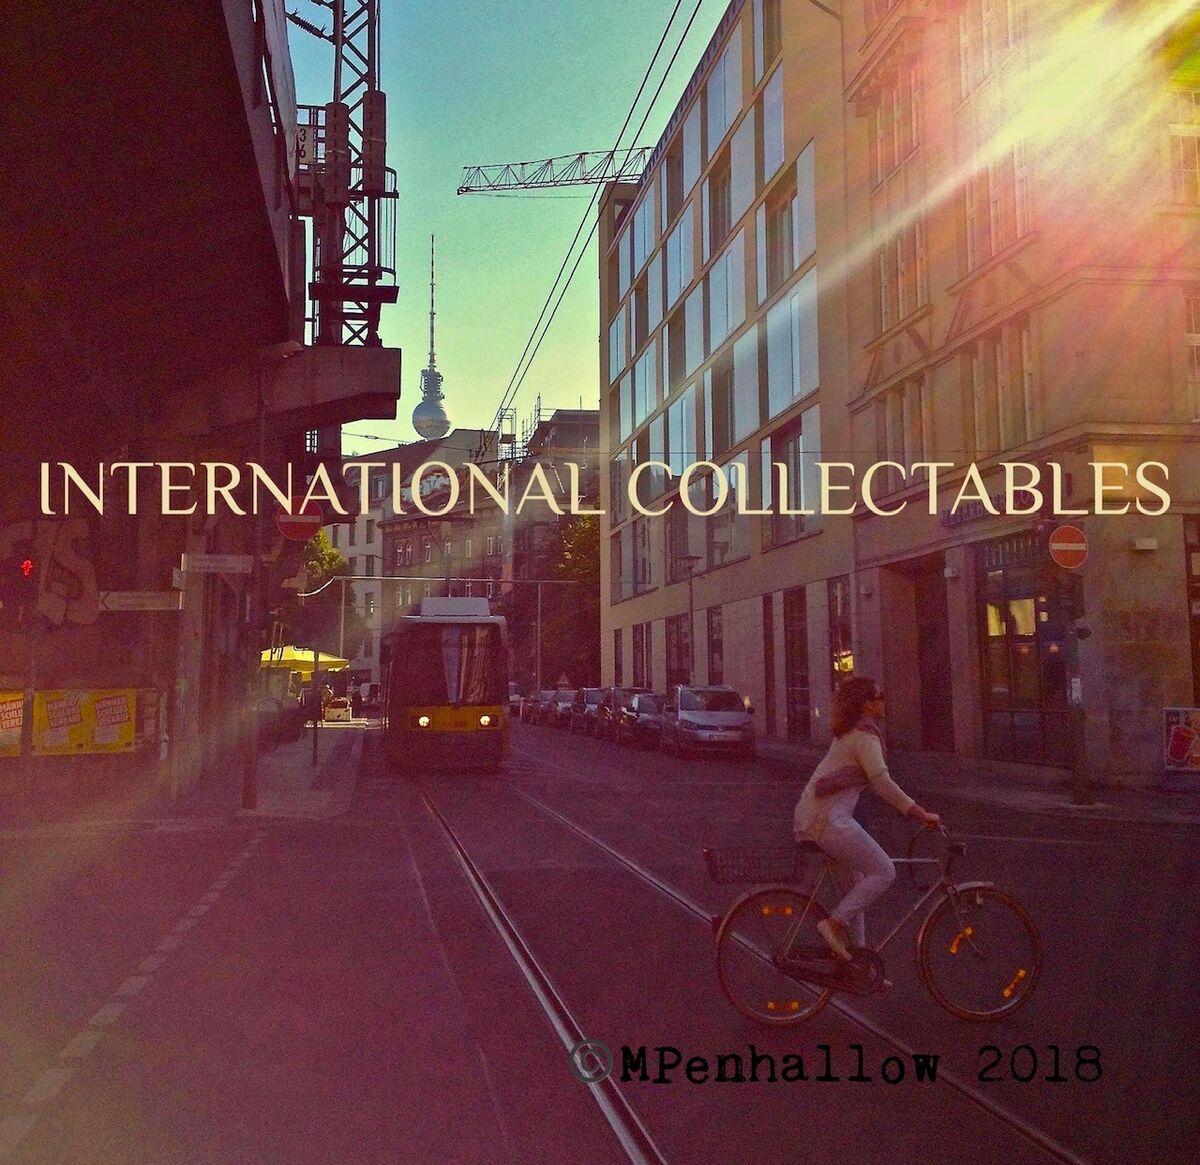 INTERNATIONAL COLLECTABLES